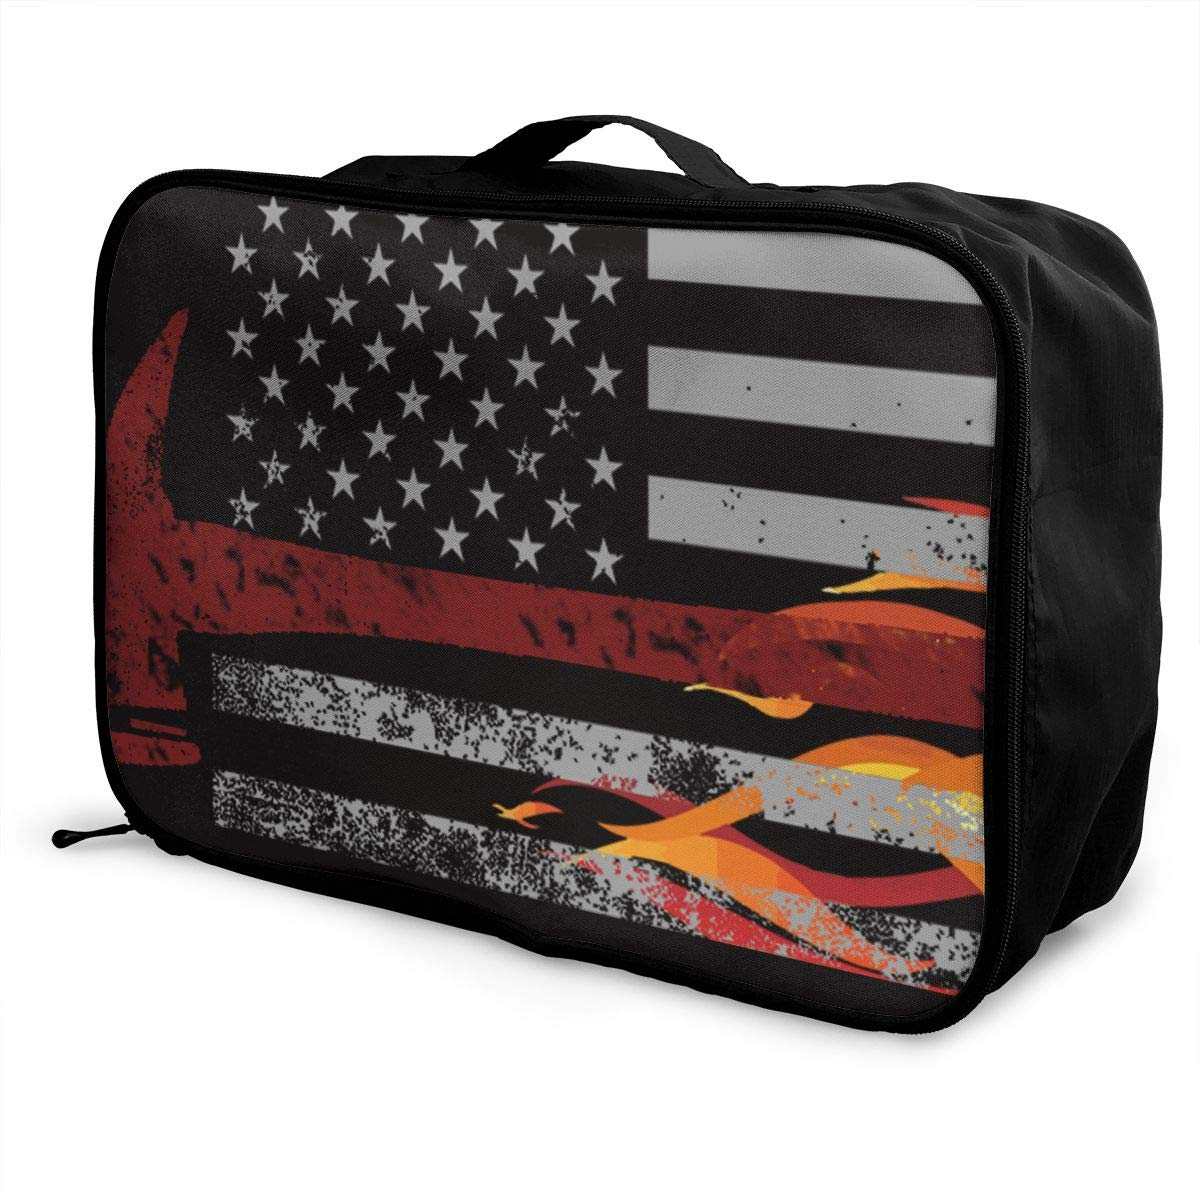 YueLJB Firefighter Red Thin Flag Lightweight Large Capacity Portable Luggage Bag Travel Duffel Bag Storage Carry Luggage Duffle Tote Bag